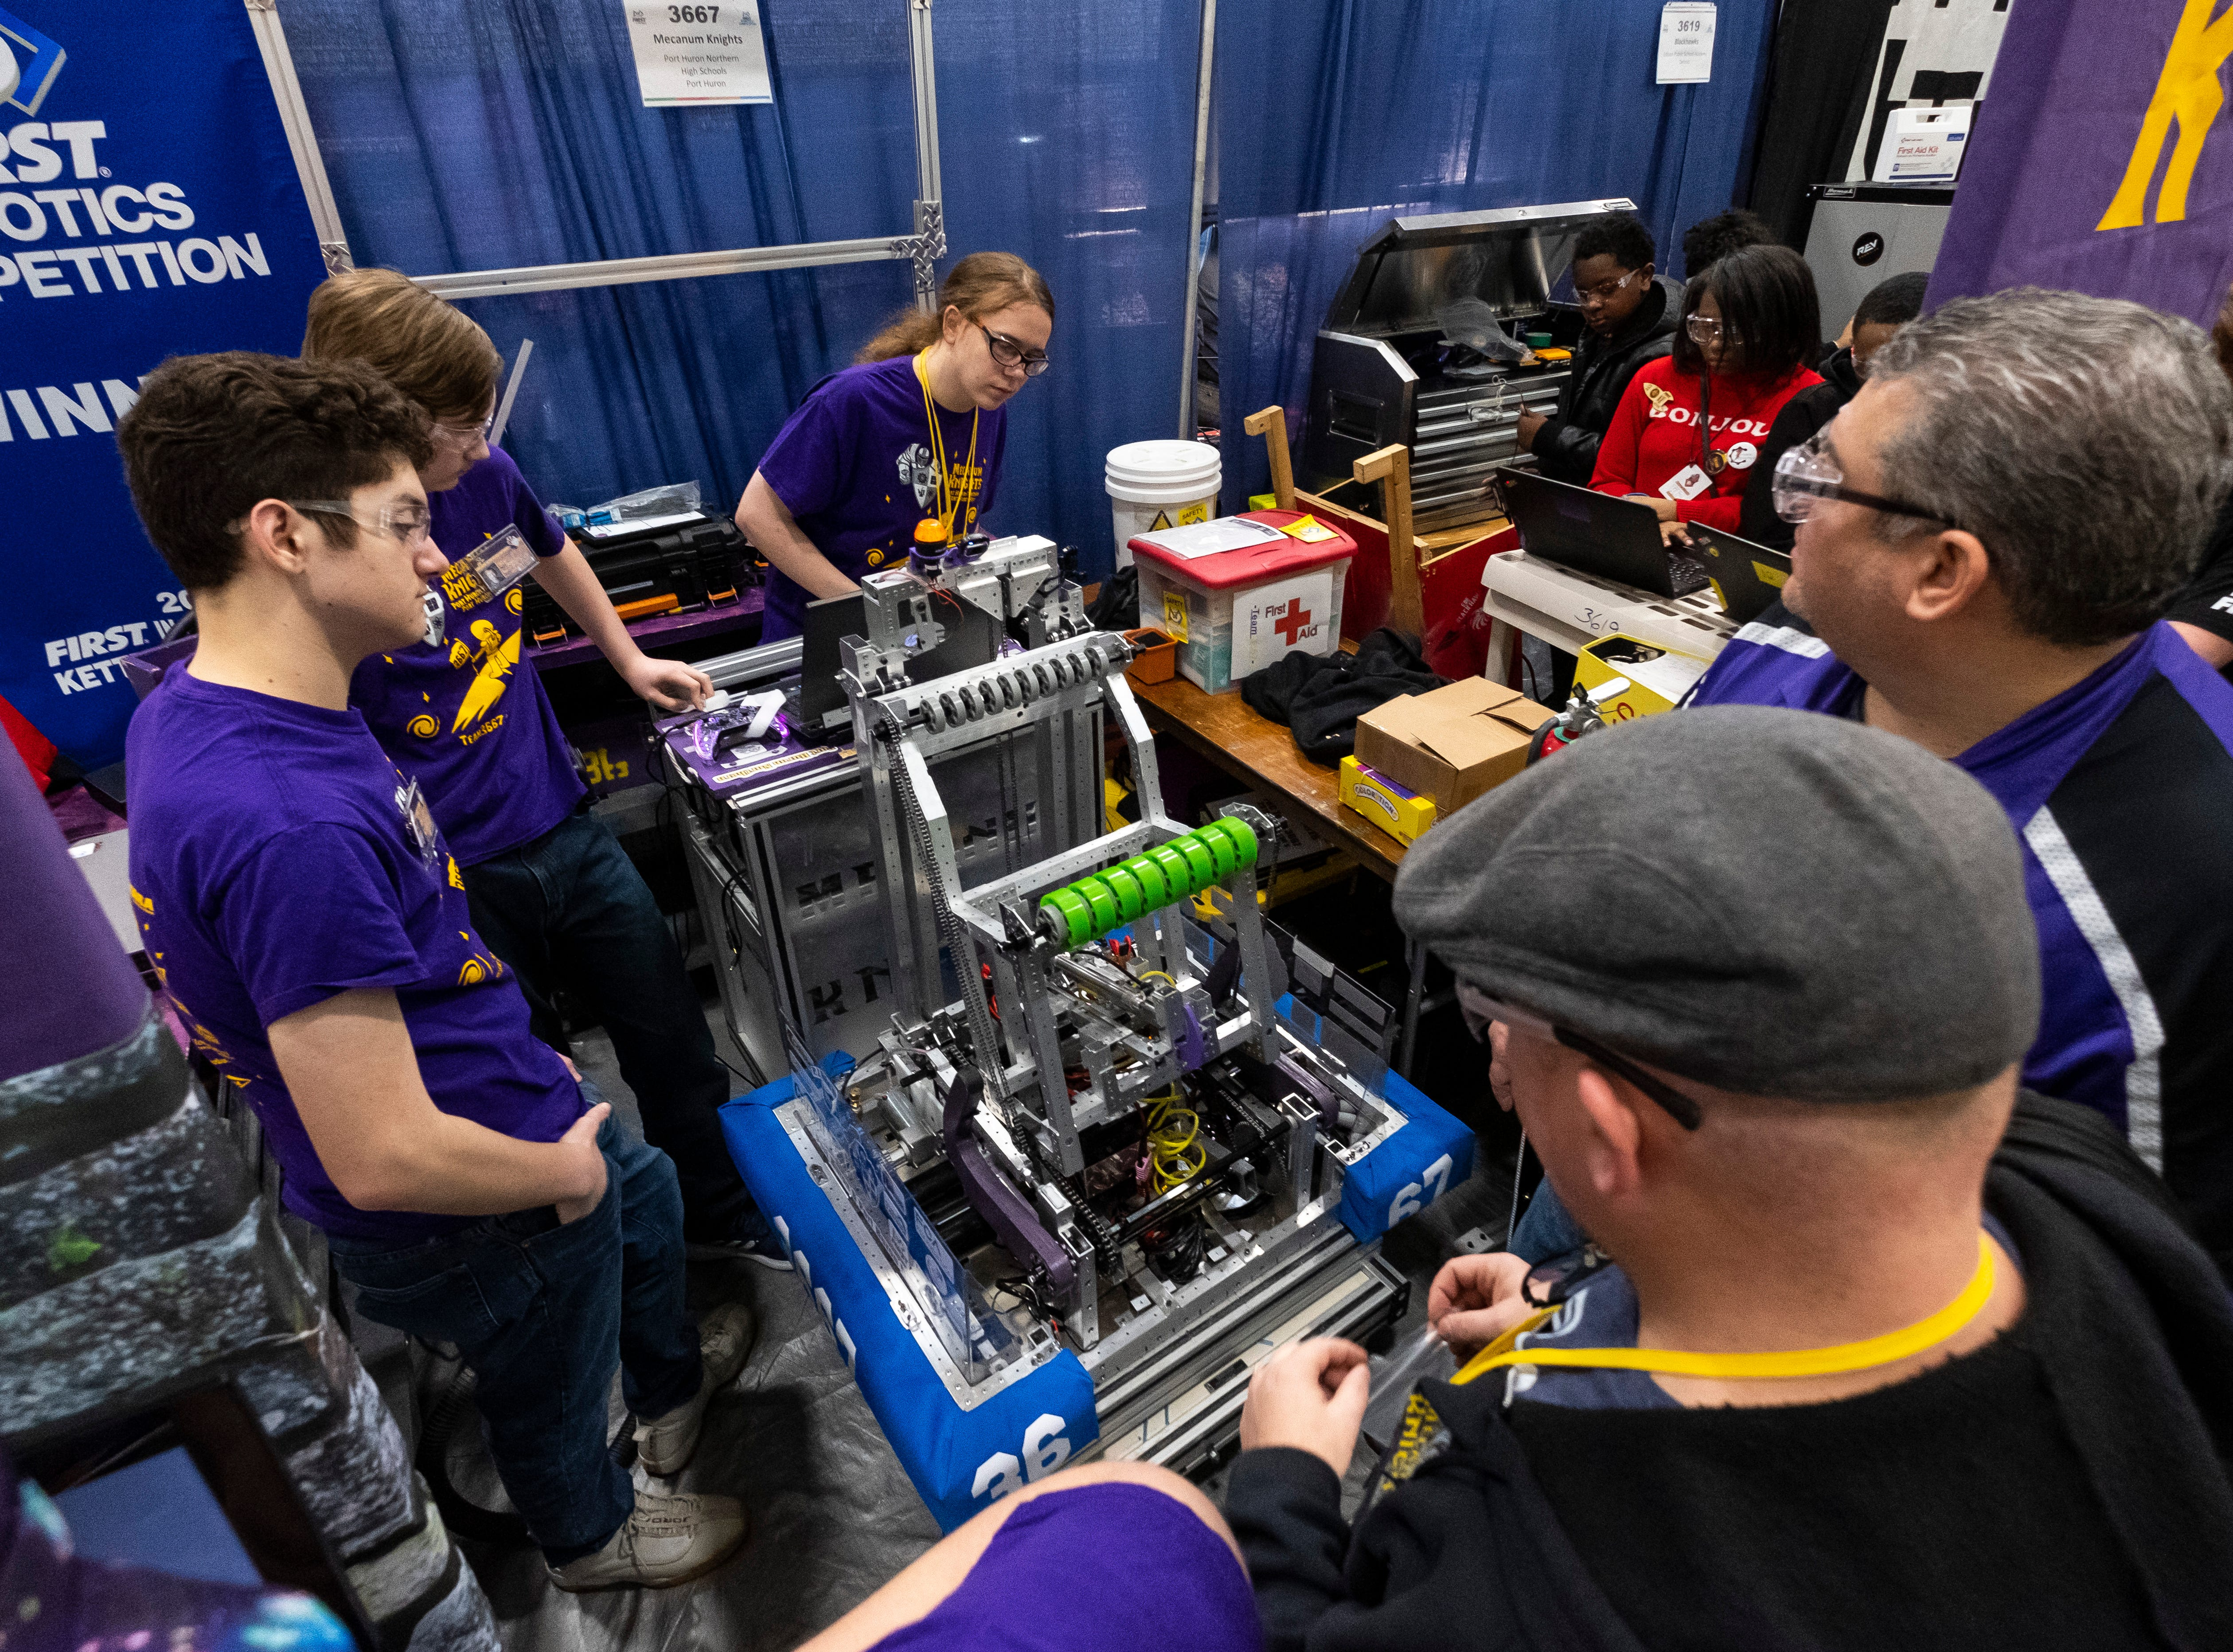 The Port Huron Mecanum Knights make last-minute adjustments to their robot before the FIRST Robotics district event Friday, March 29, 2019 at Marysville High School.